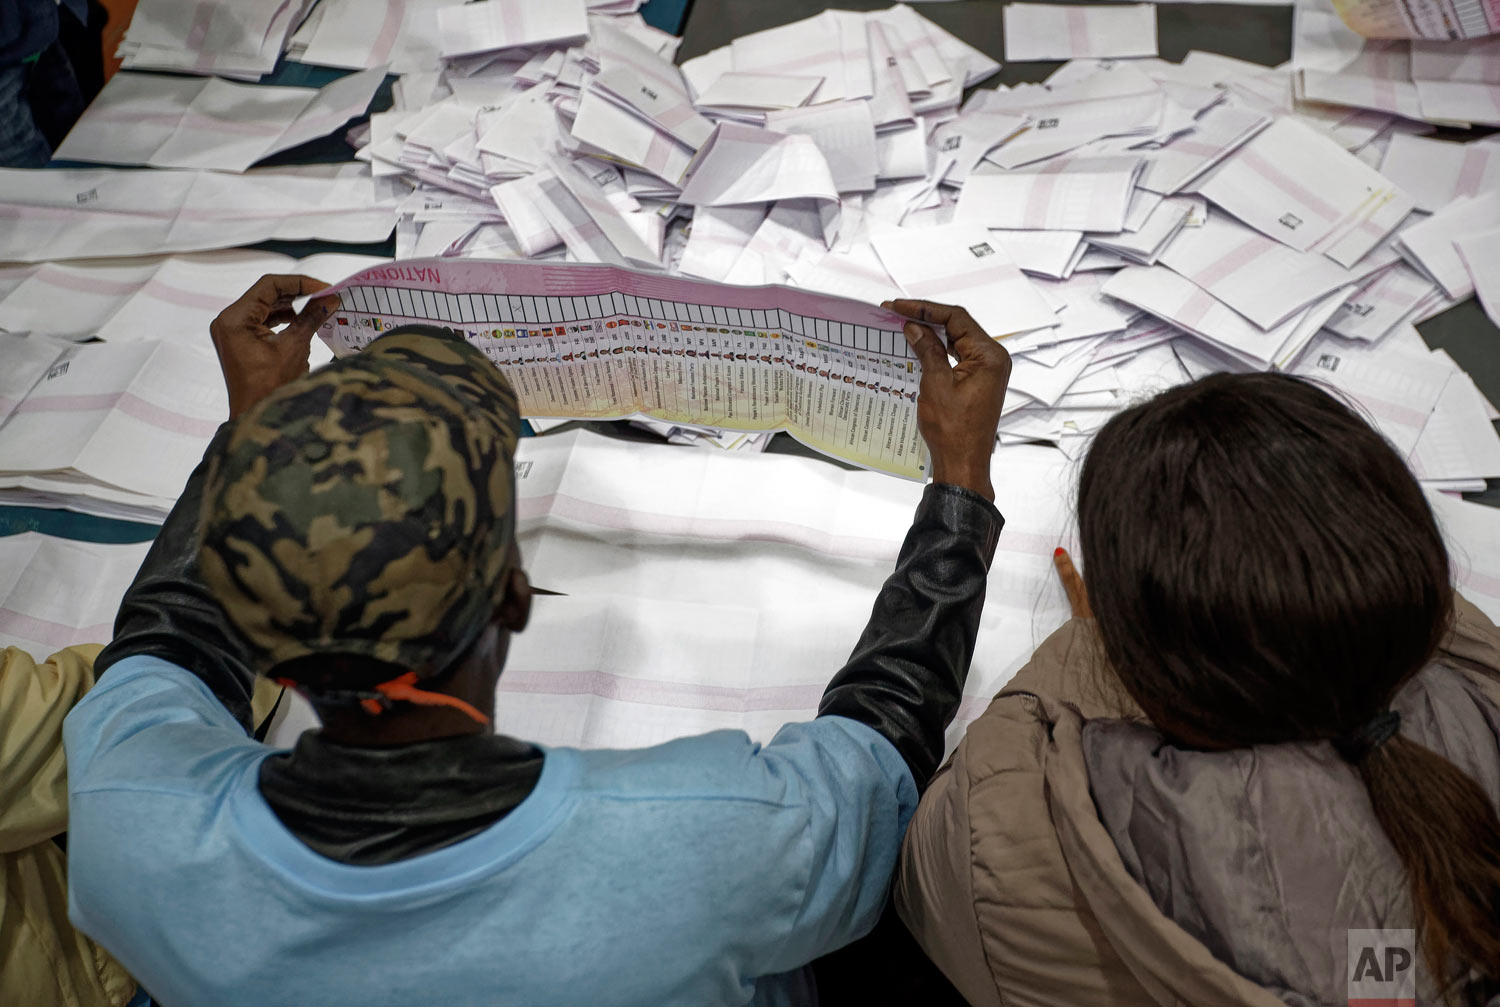 Electoral workers count ballots in view of party agents after the close of polls at the Parkhurst Primary School in Johannesburg, South Africa, May 8, 2019. (AP Photo/Ben Curtis)